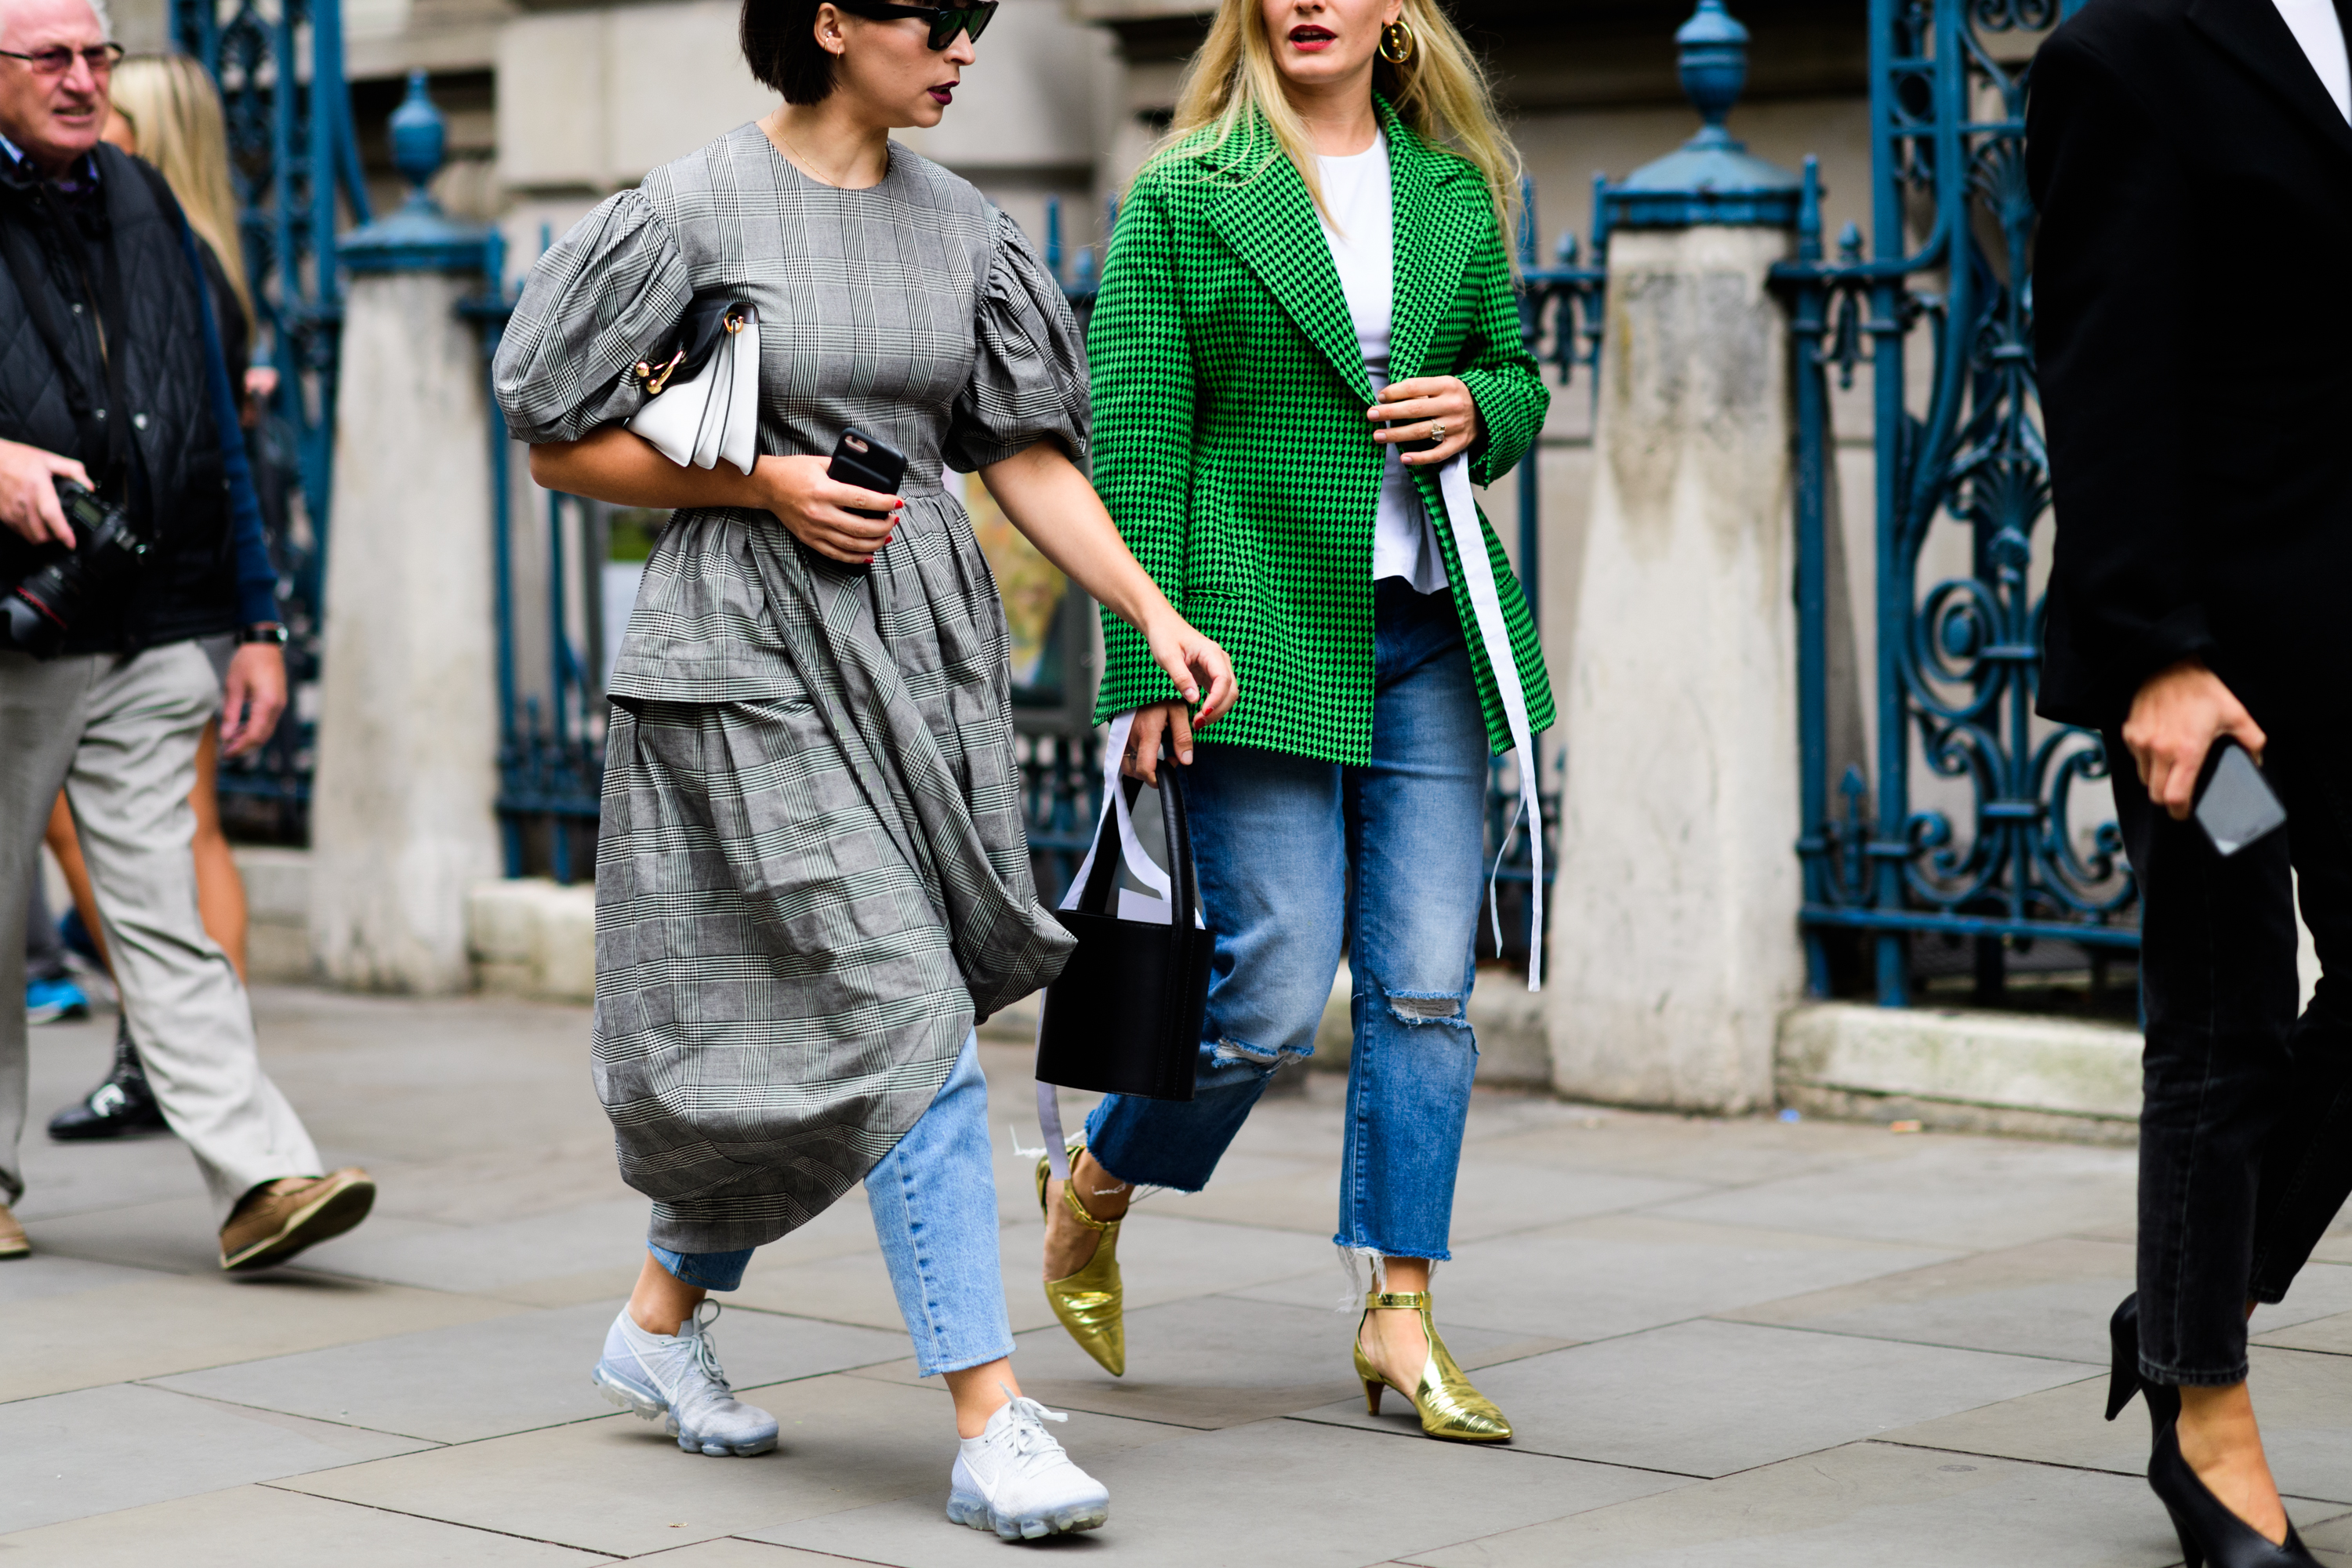 london-lfw-street-style-ss18-day-1-tyler-joe-077-1505753315